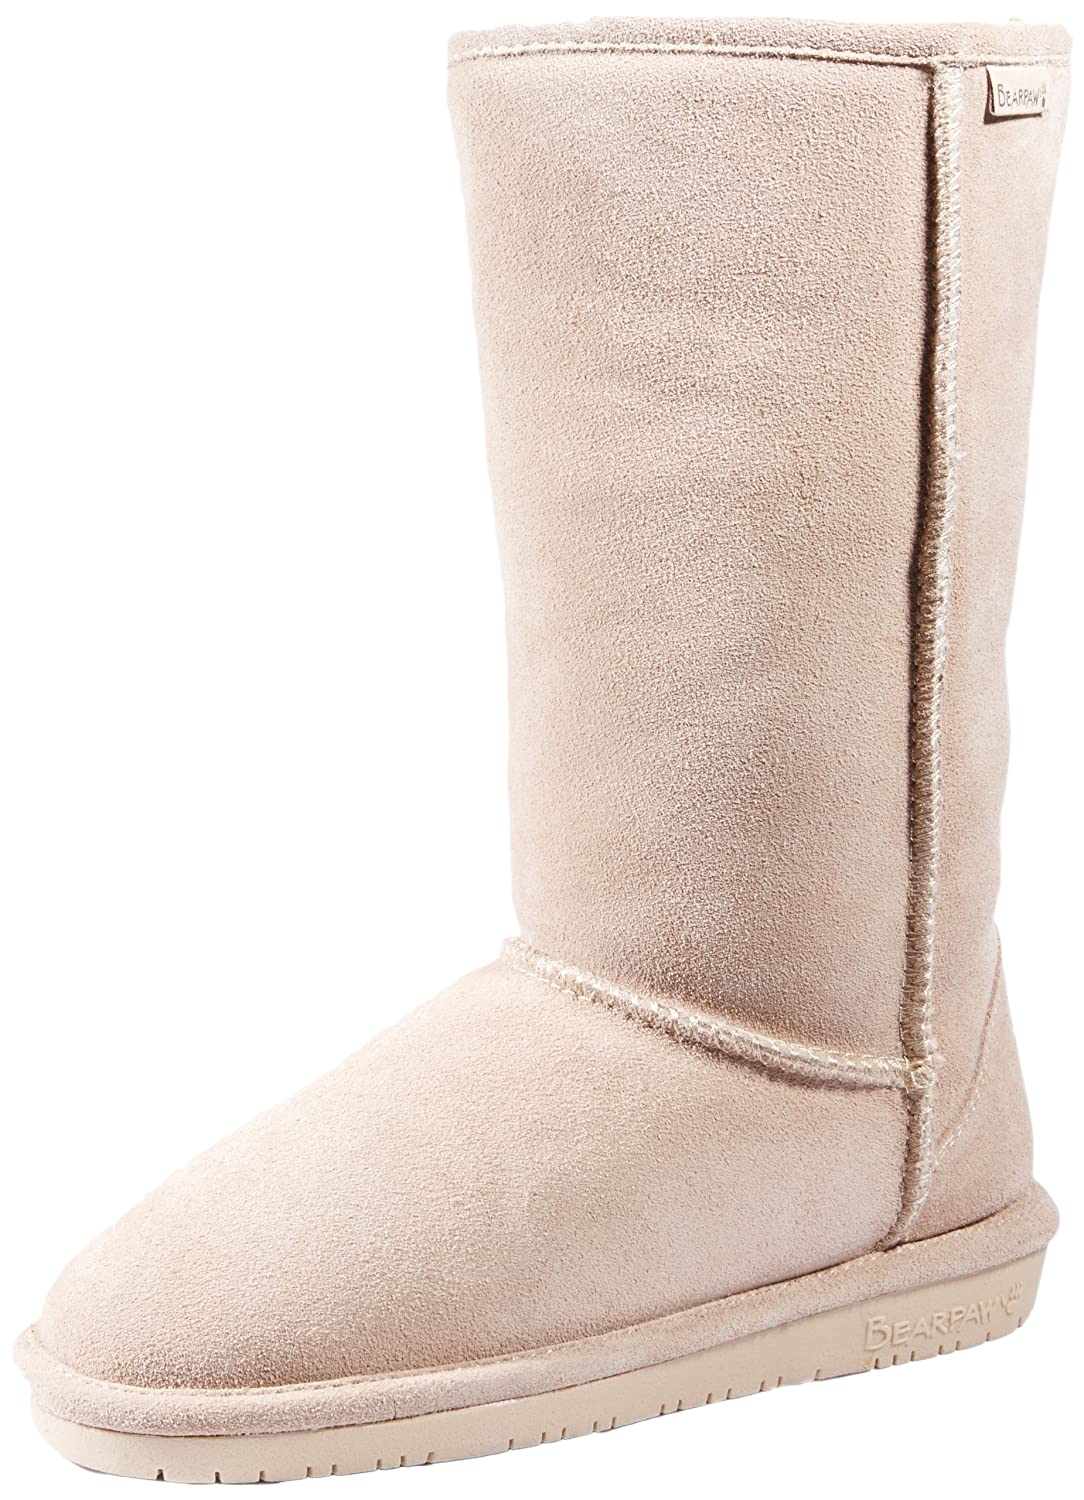 BEARPAW Women's Emma Fashion Boot B0073BRJMQ 6 B(M) US|Camel